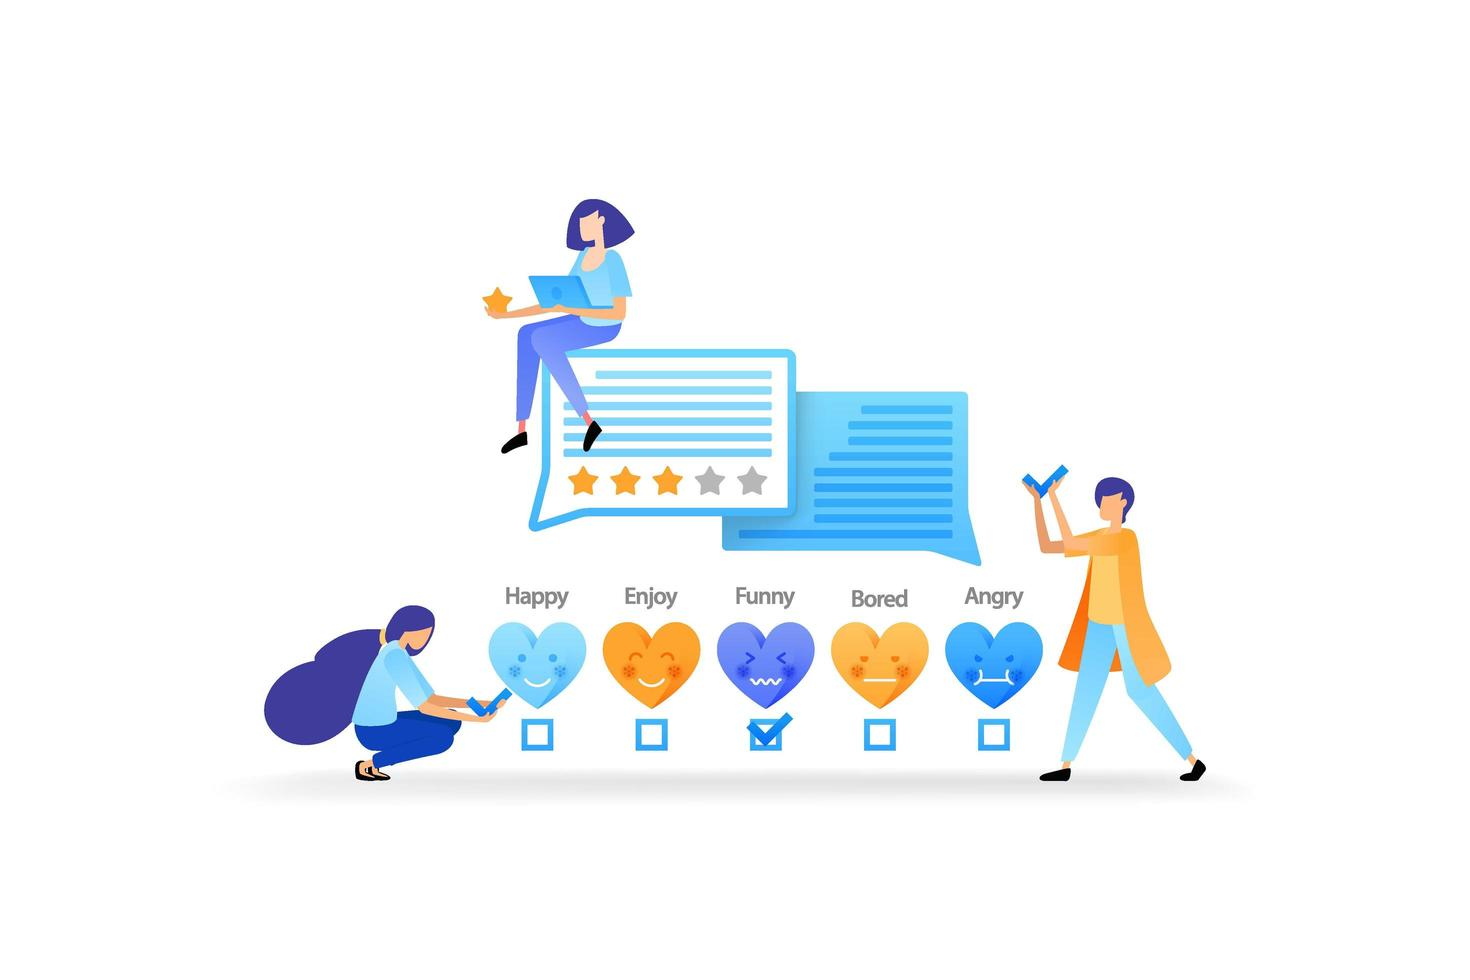 give likes, ratings, emoticons and feedback. include testimonials to get better service and damage. vector illustration concept for landing page, web, ui, banner, flyer, poster, template, background